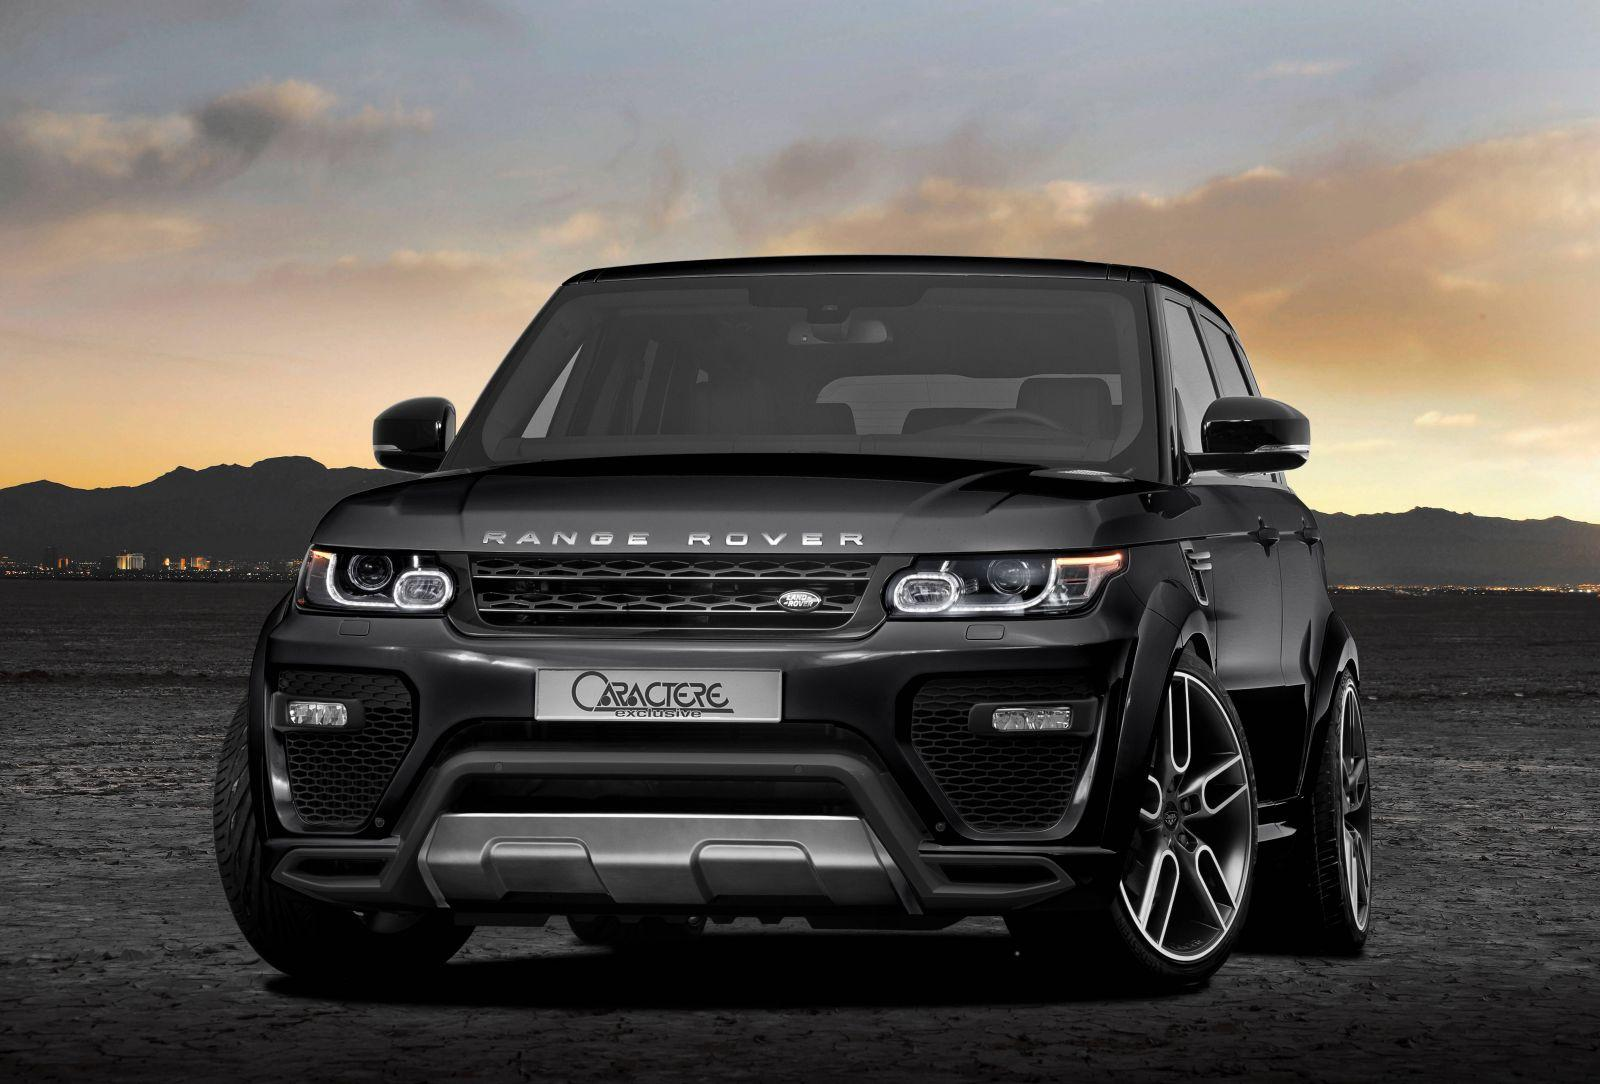 2018 Land Rover Discovery Sport Review >> Caractere Exclusive tweaks Range Rover Sport - ForceGT.com